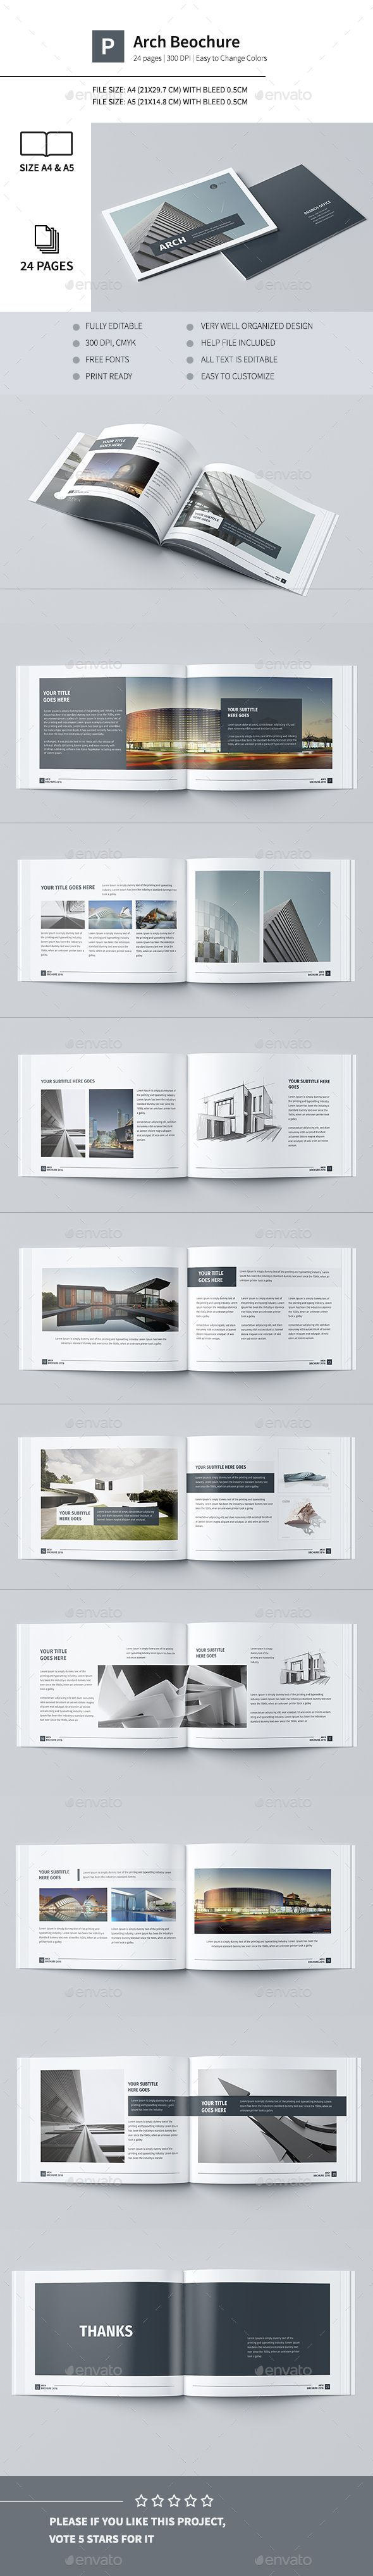 a5 brochure template - modern architecture brochure 24 pages a4 a5 logos